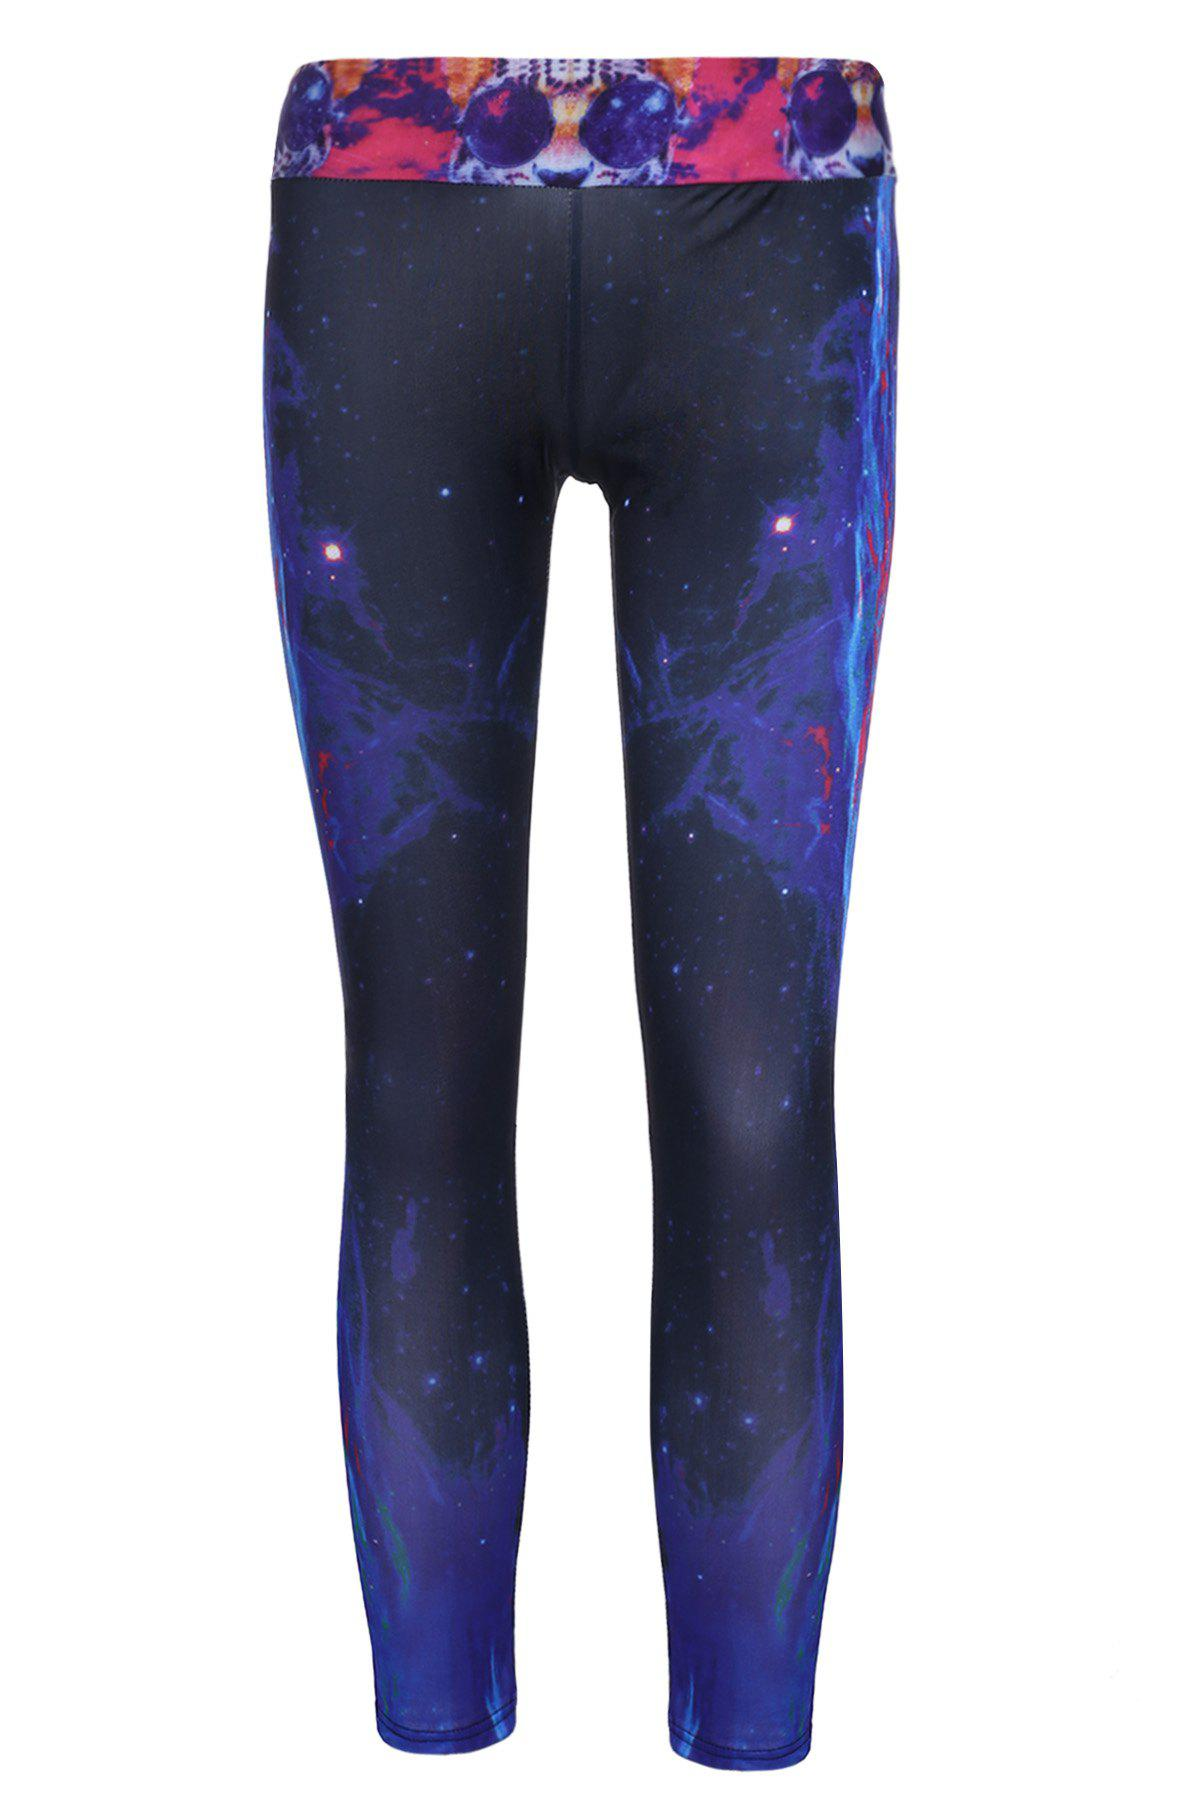 Stylish Elastic Waist Tiger and Galaxy Printed Yoga Pants For WomenWOMEN<br><br>Size: ONE SIZE(FIT SIZE XS TO M); Color: BLACK; Gender: For Women; Material: Polyester,Lycra; Weight: 0.186kg; Package Contents: 1 x Pants;